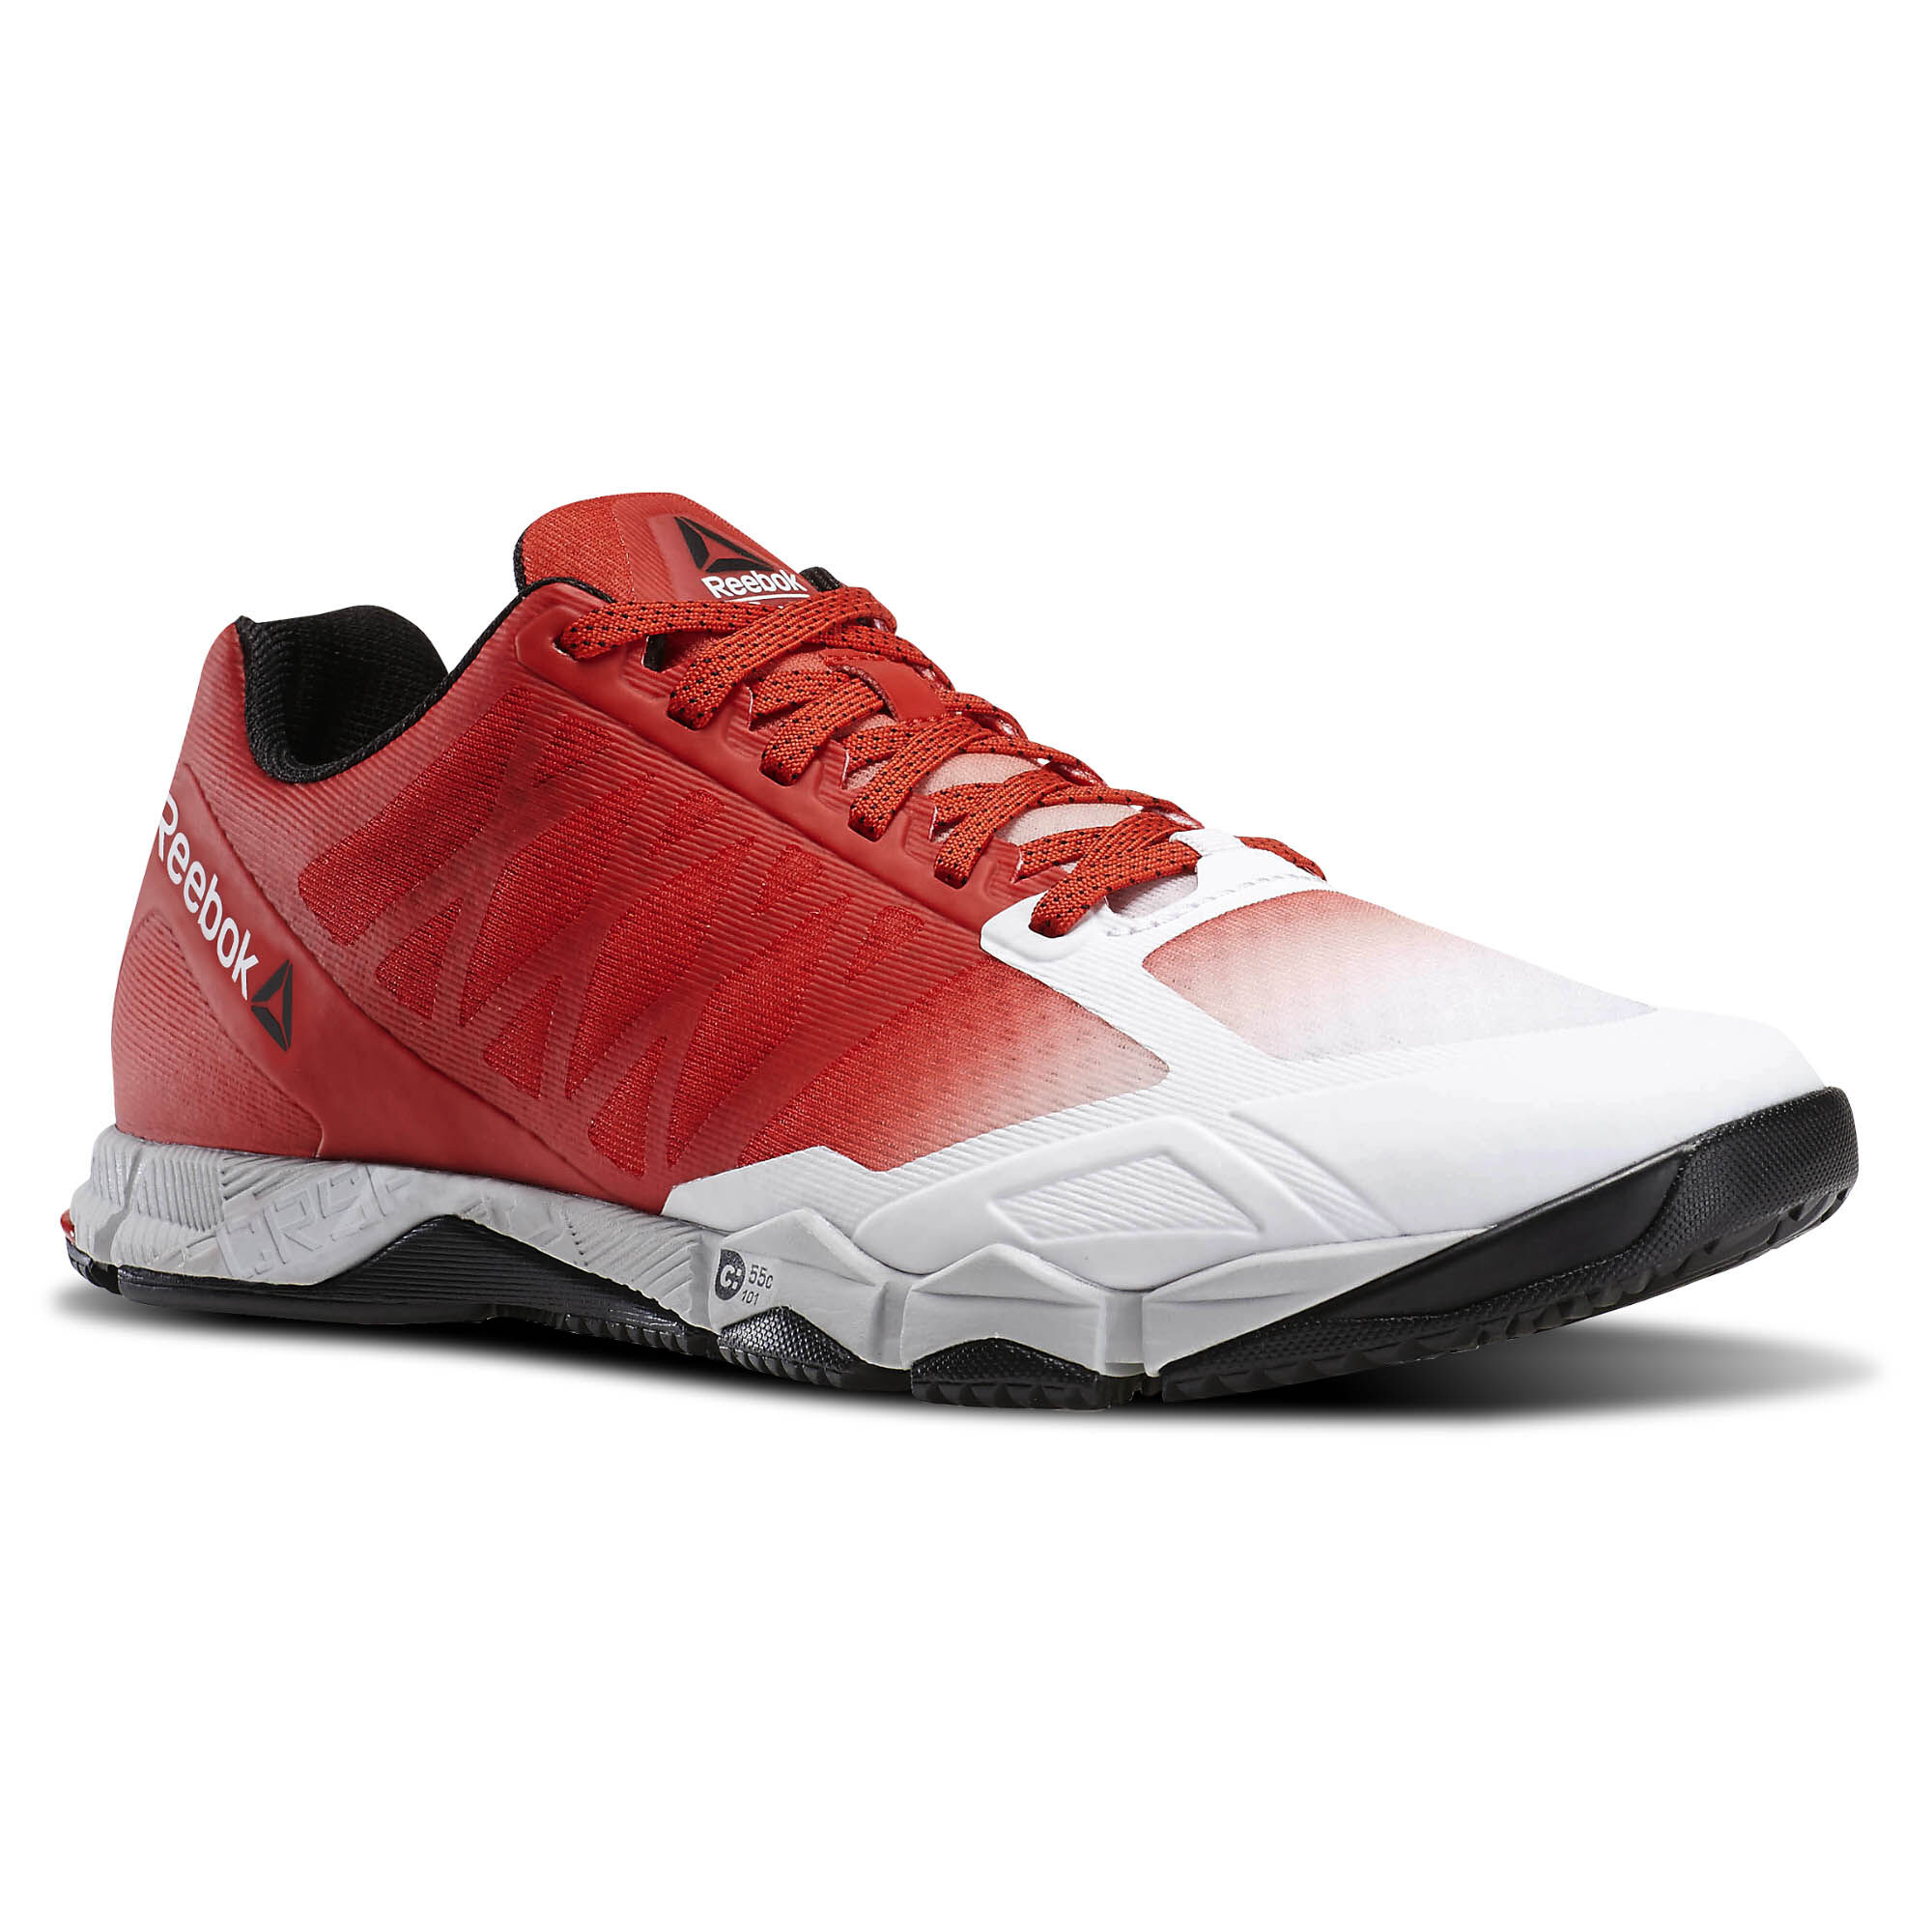 competitive price 49978 2ffac reebok crossfit american flag shoes